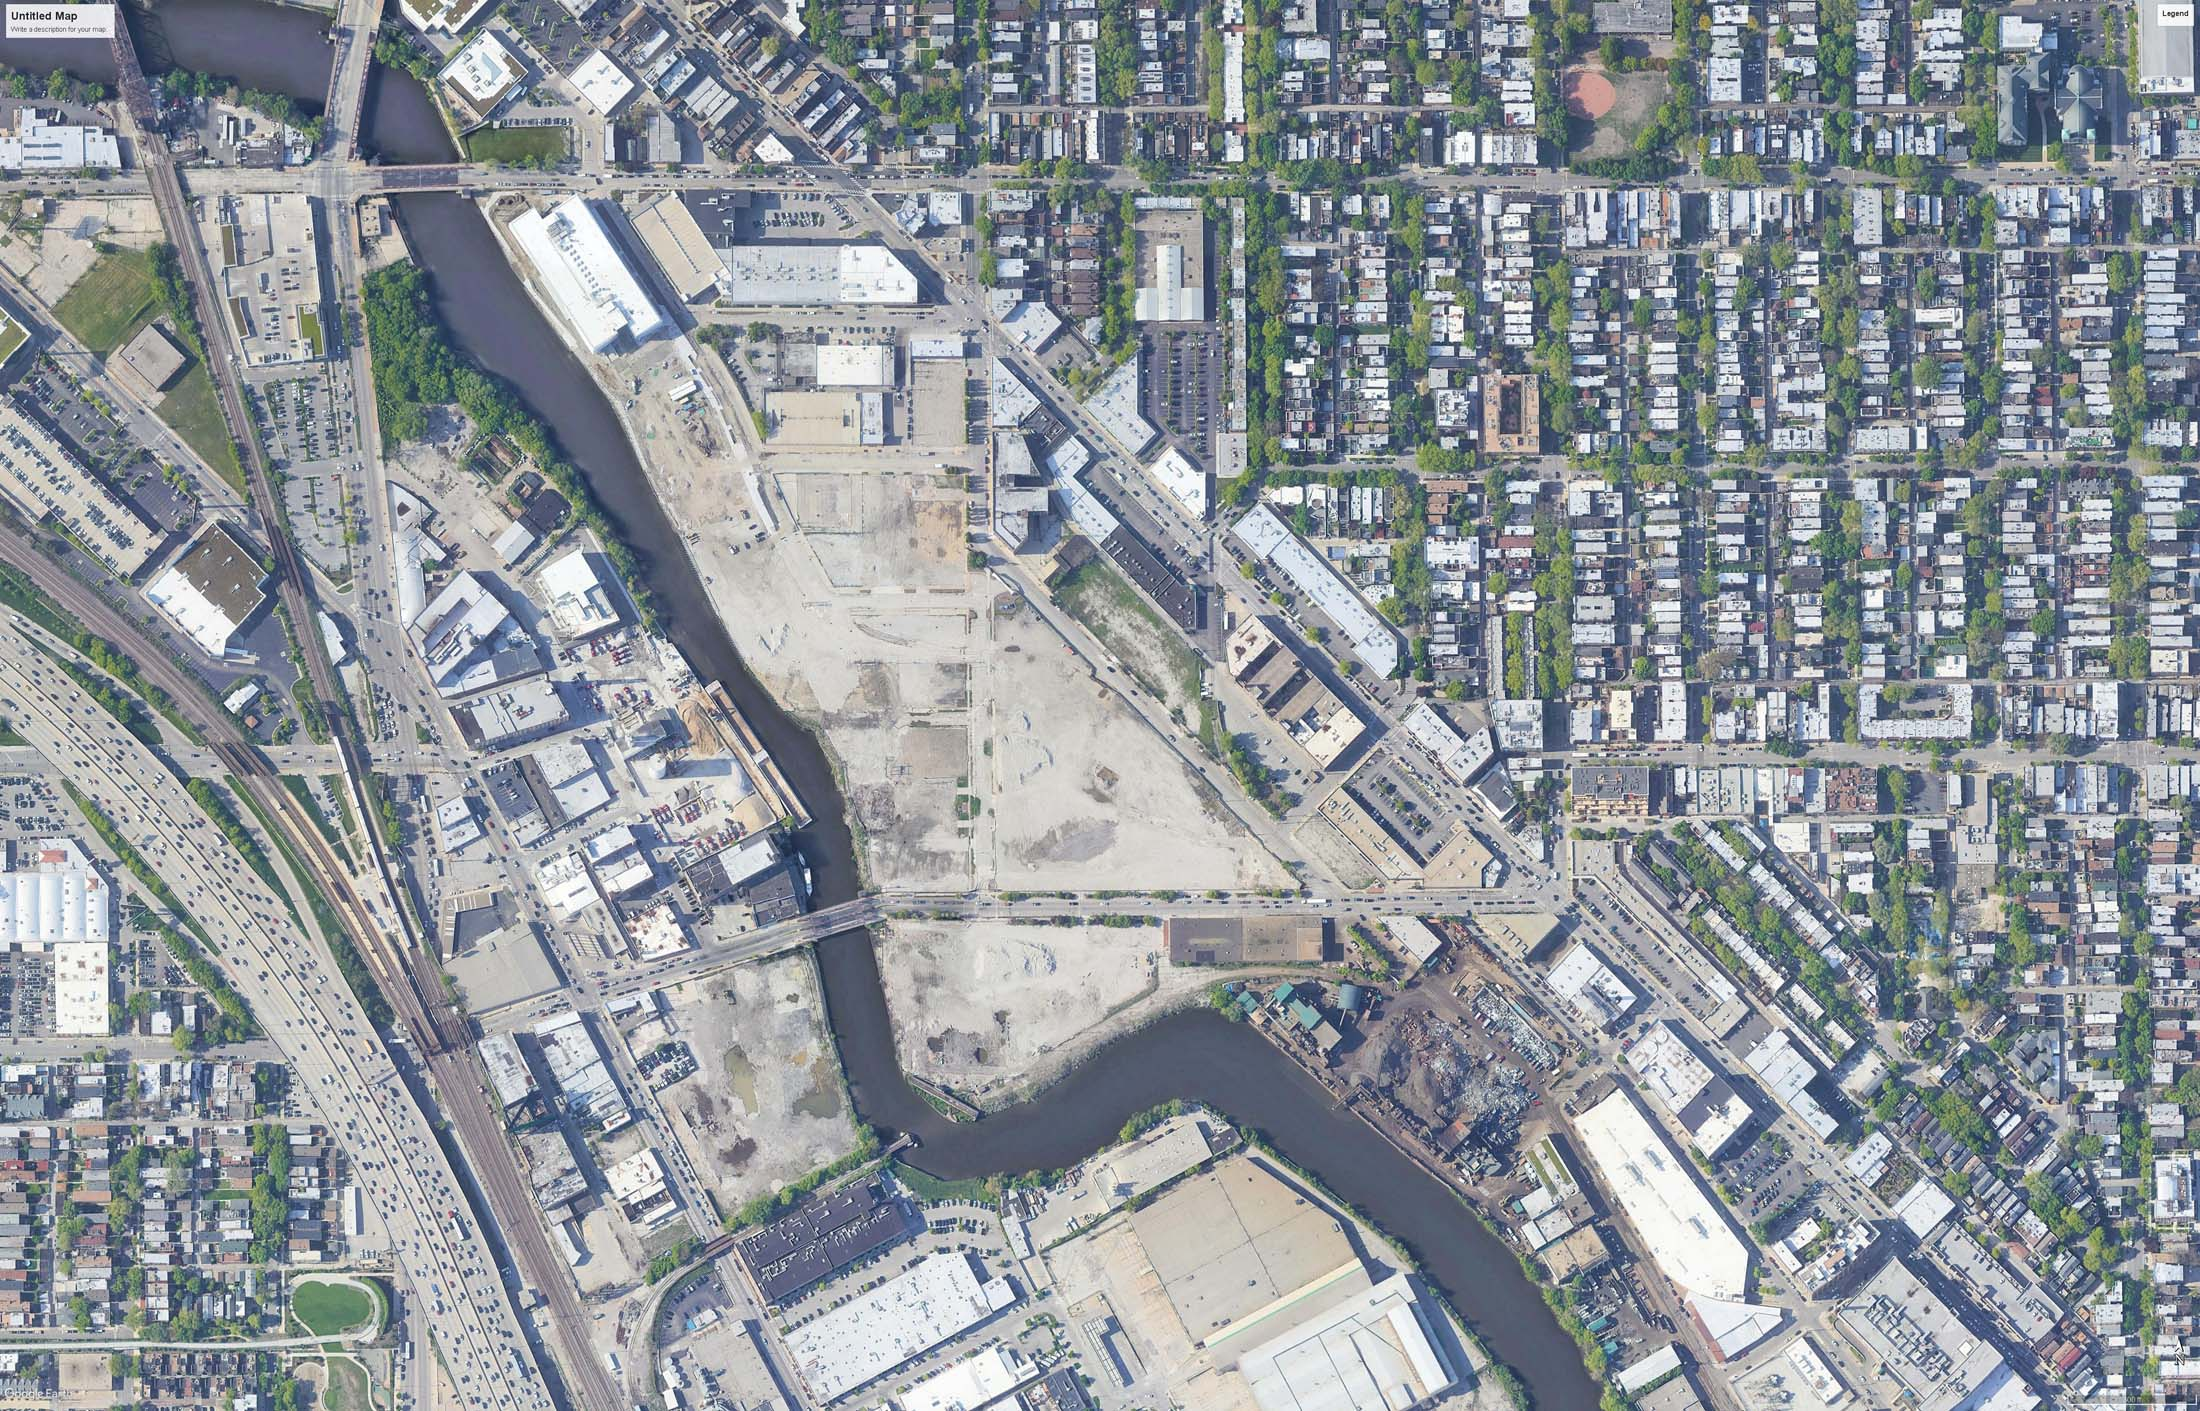 Fig 8 - The Highly Valued Lincoln Yards Site Soon to be Developed